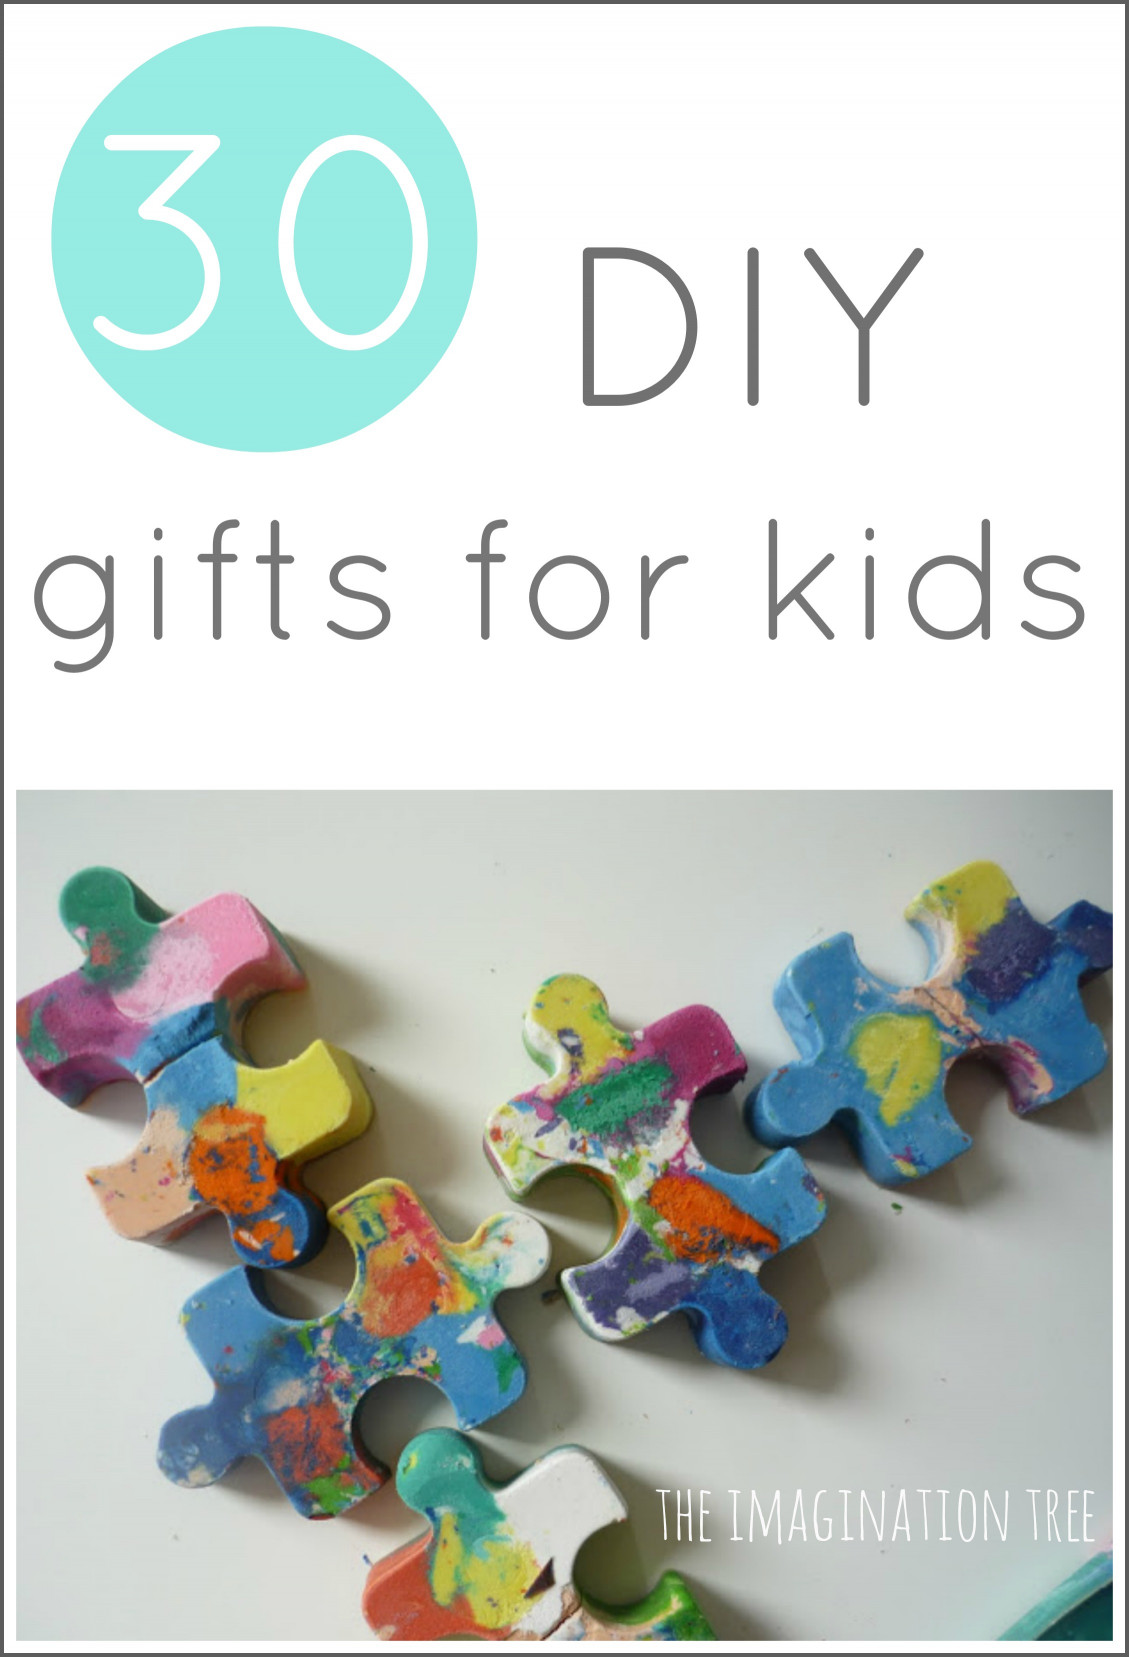 DIY Christmas Gift For Kids  30 DIY Gifts to Make for Kids The Imagination Tree